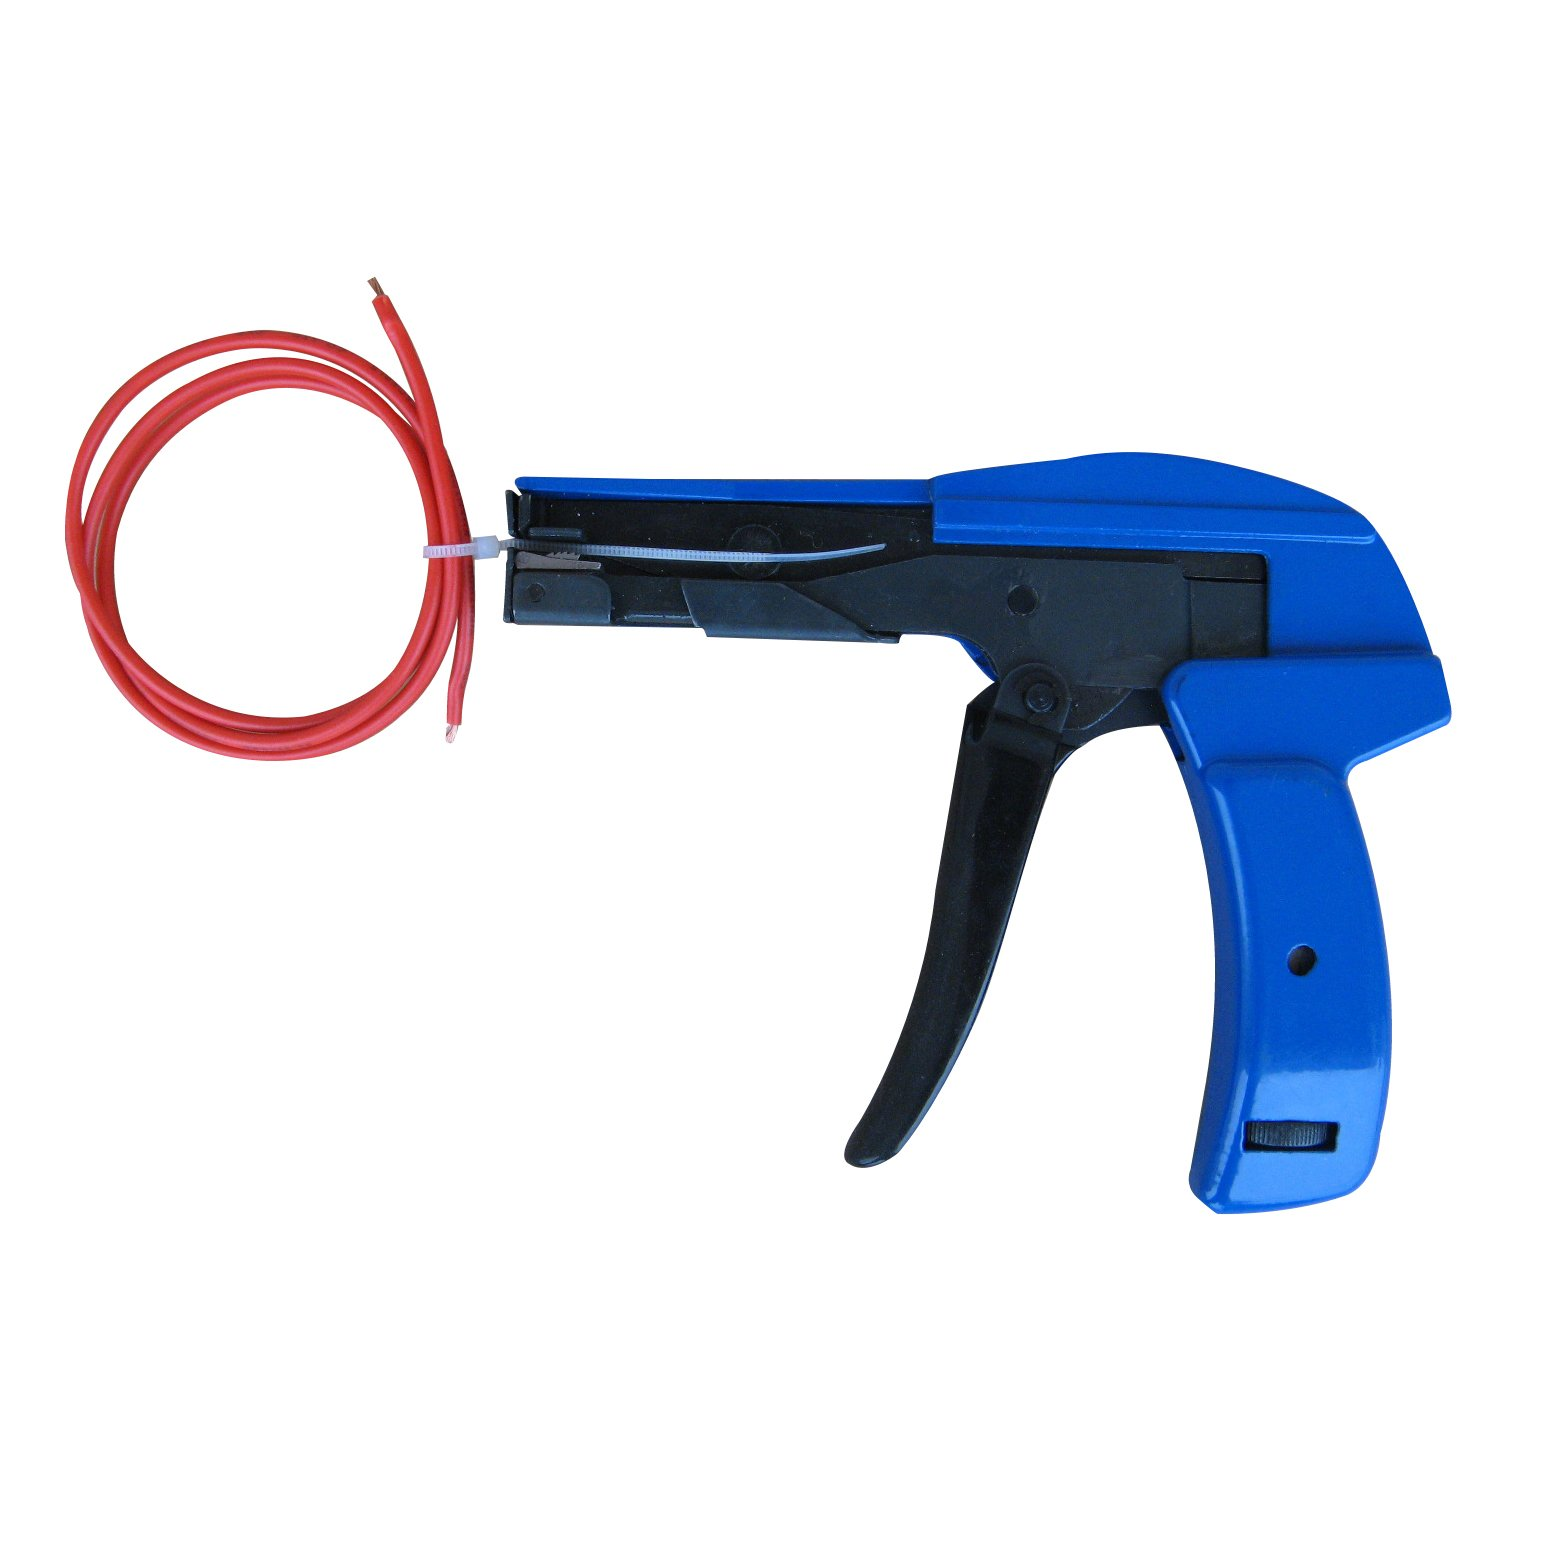 ECO LLC 165mm Tensioning Tool Fastener Cutting Hand Tools Plastic Nylon Cable Ties Gun